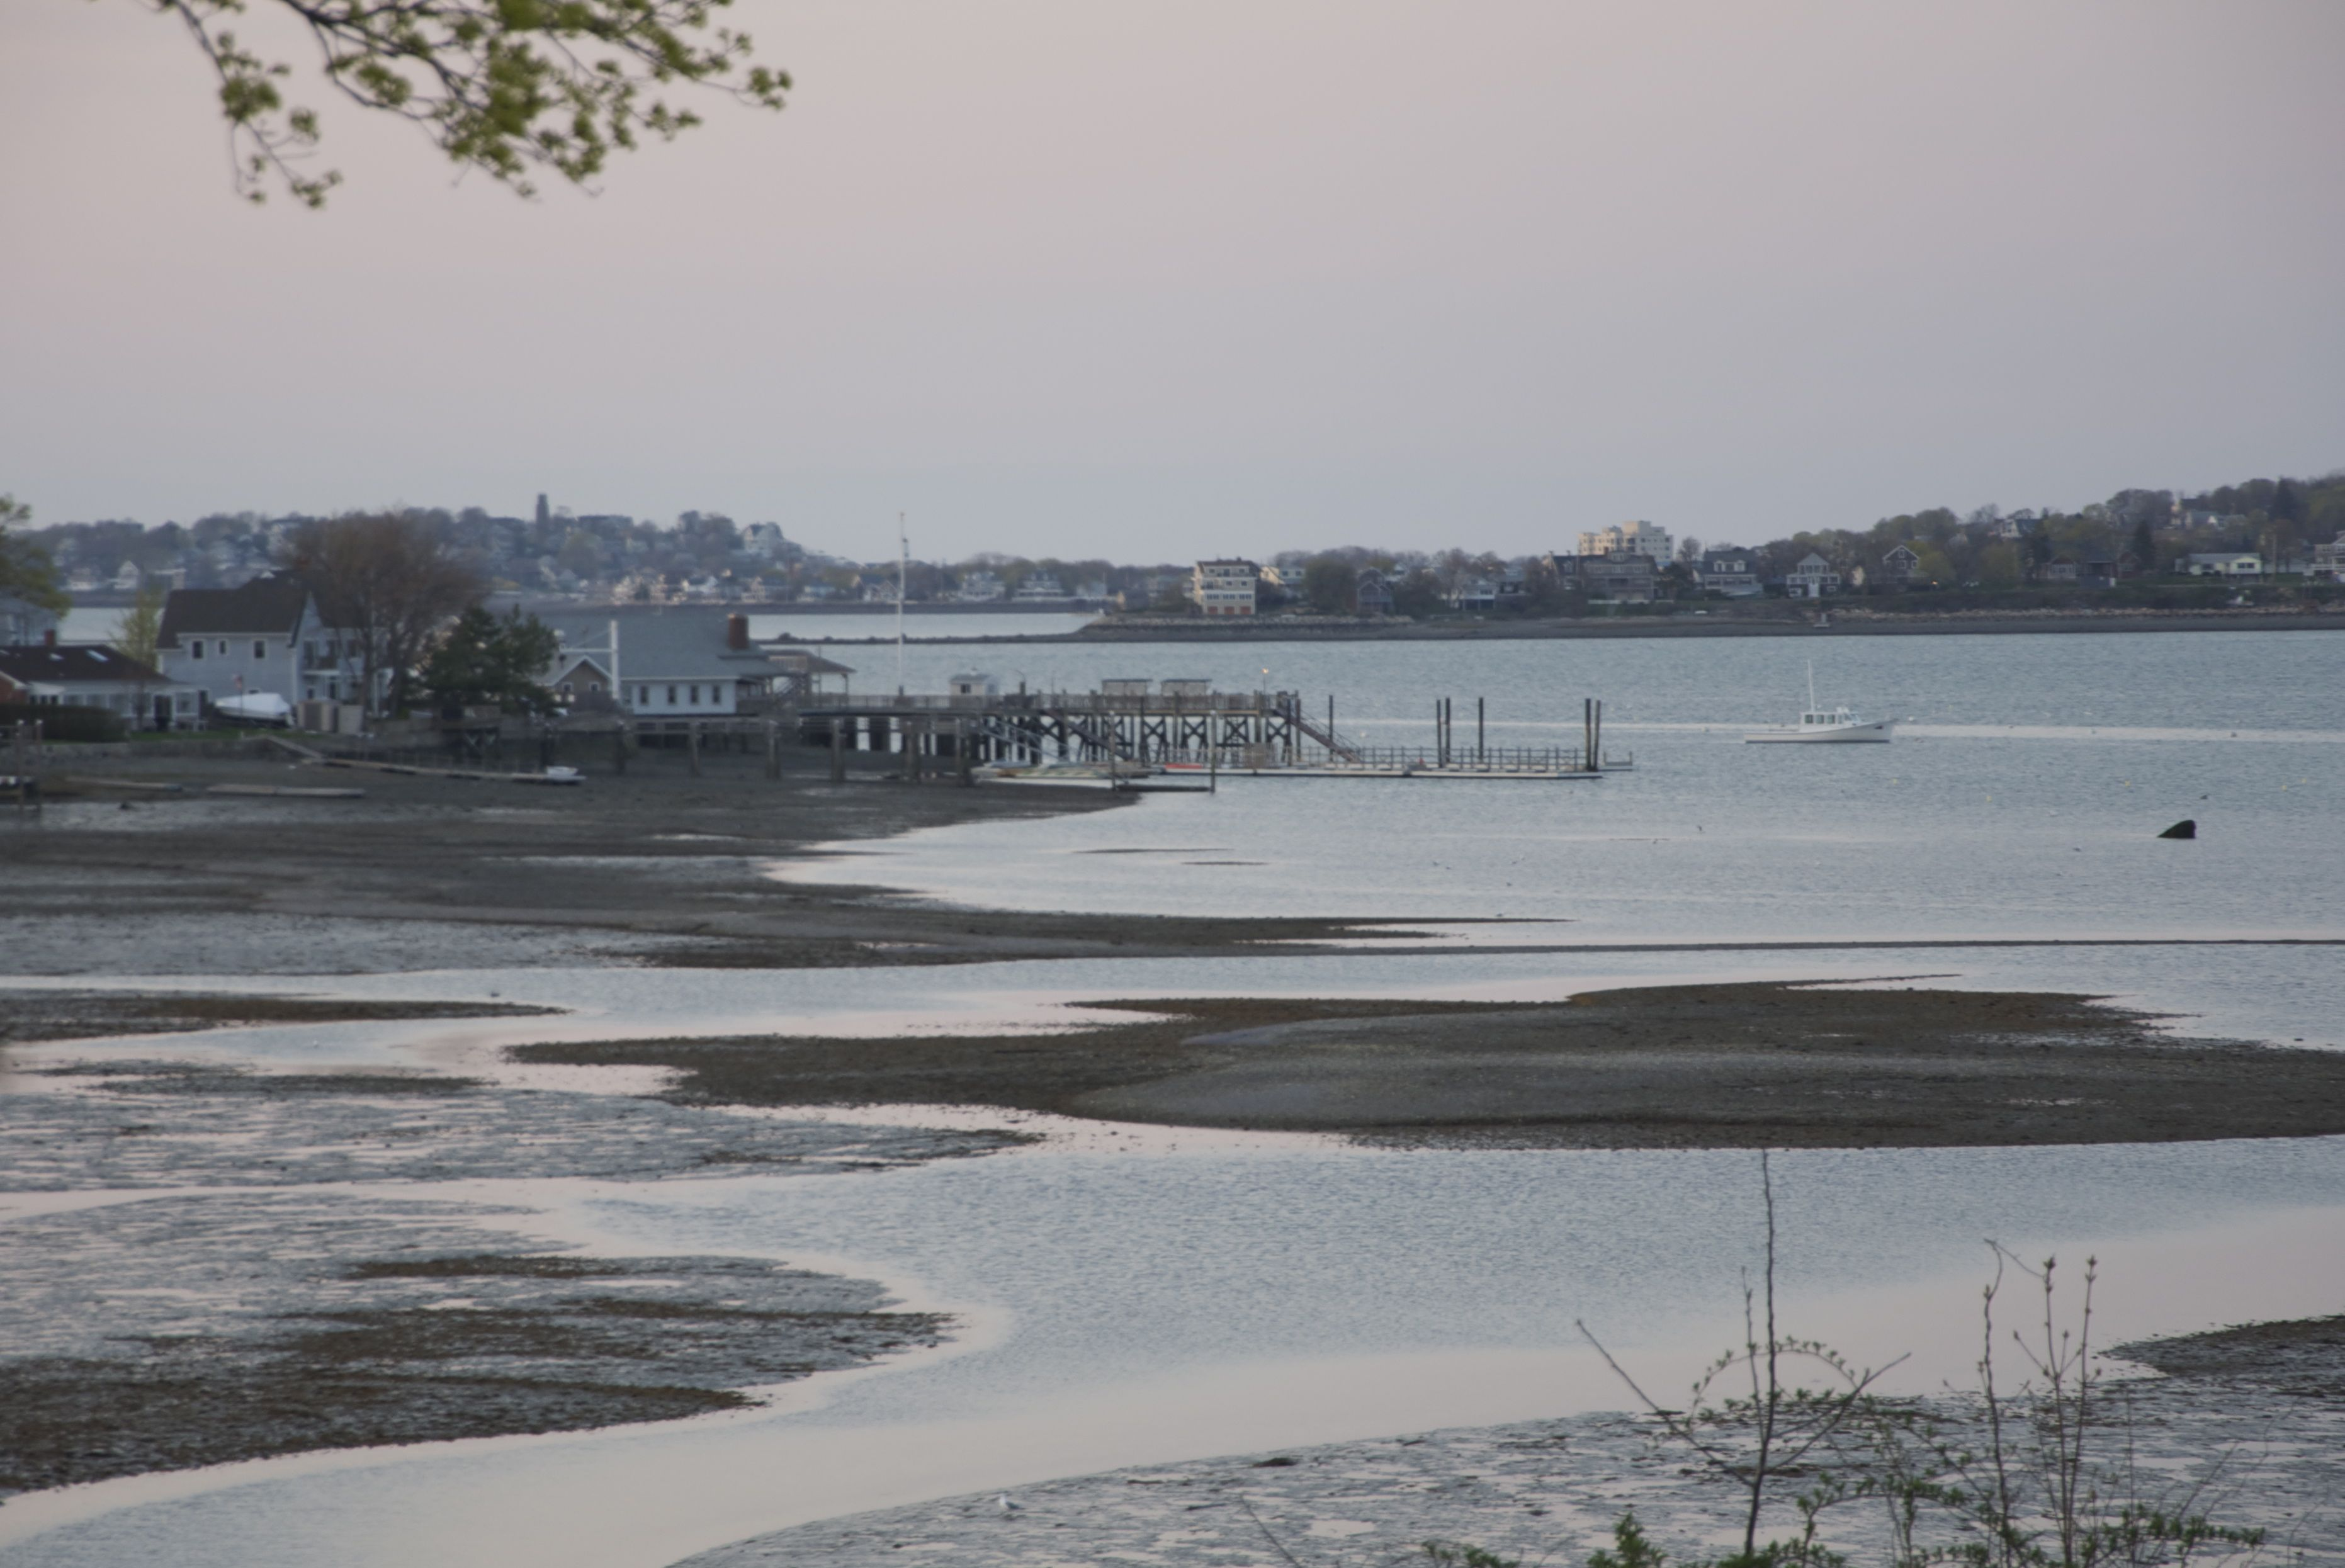 Lunar low tide boston harbor beaconboston harbor beacon once again it is the time of the month where the full moon is making the tides more extreme during this months full moon the low tide was approximately nvjuhfo Choice Image